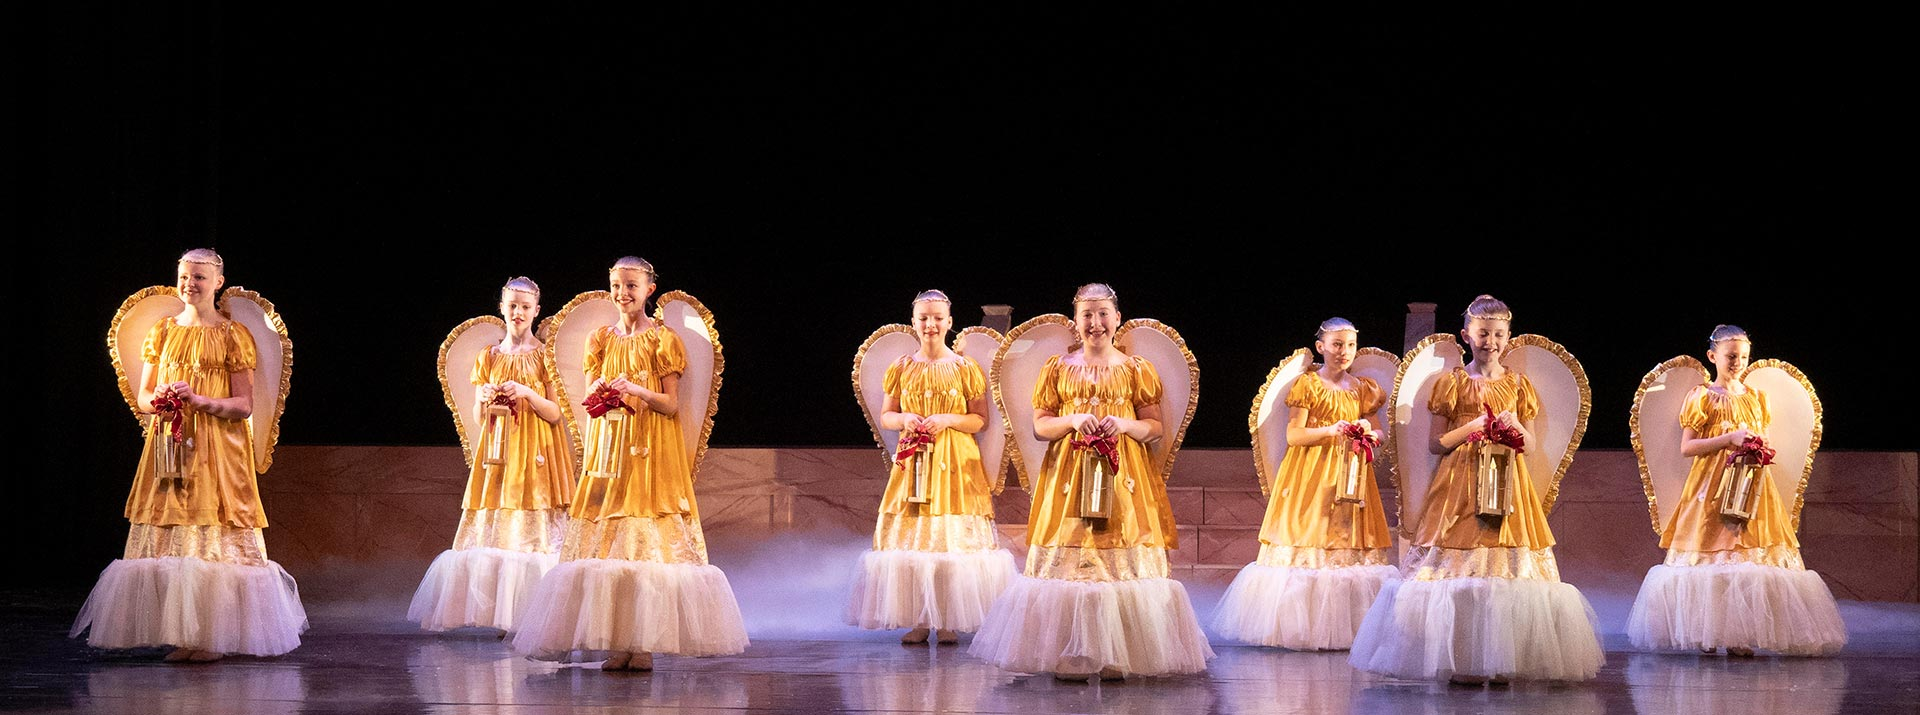 Angel scene from The Nutcracker